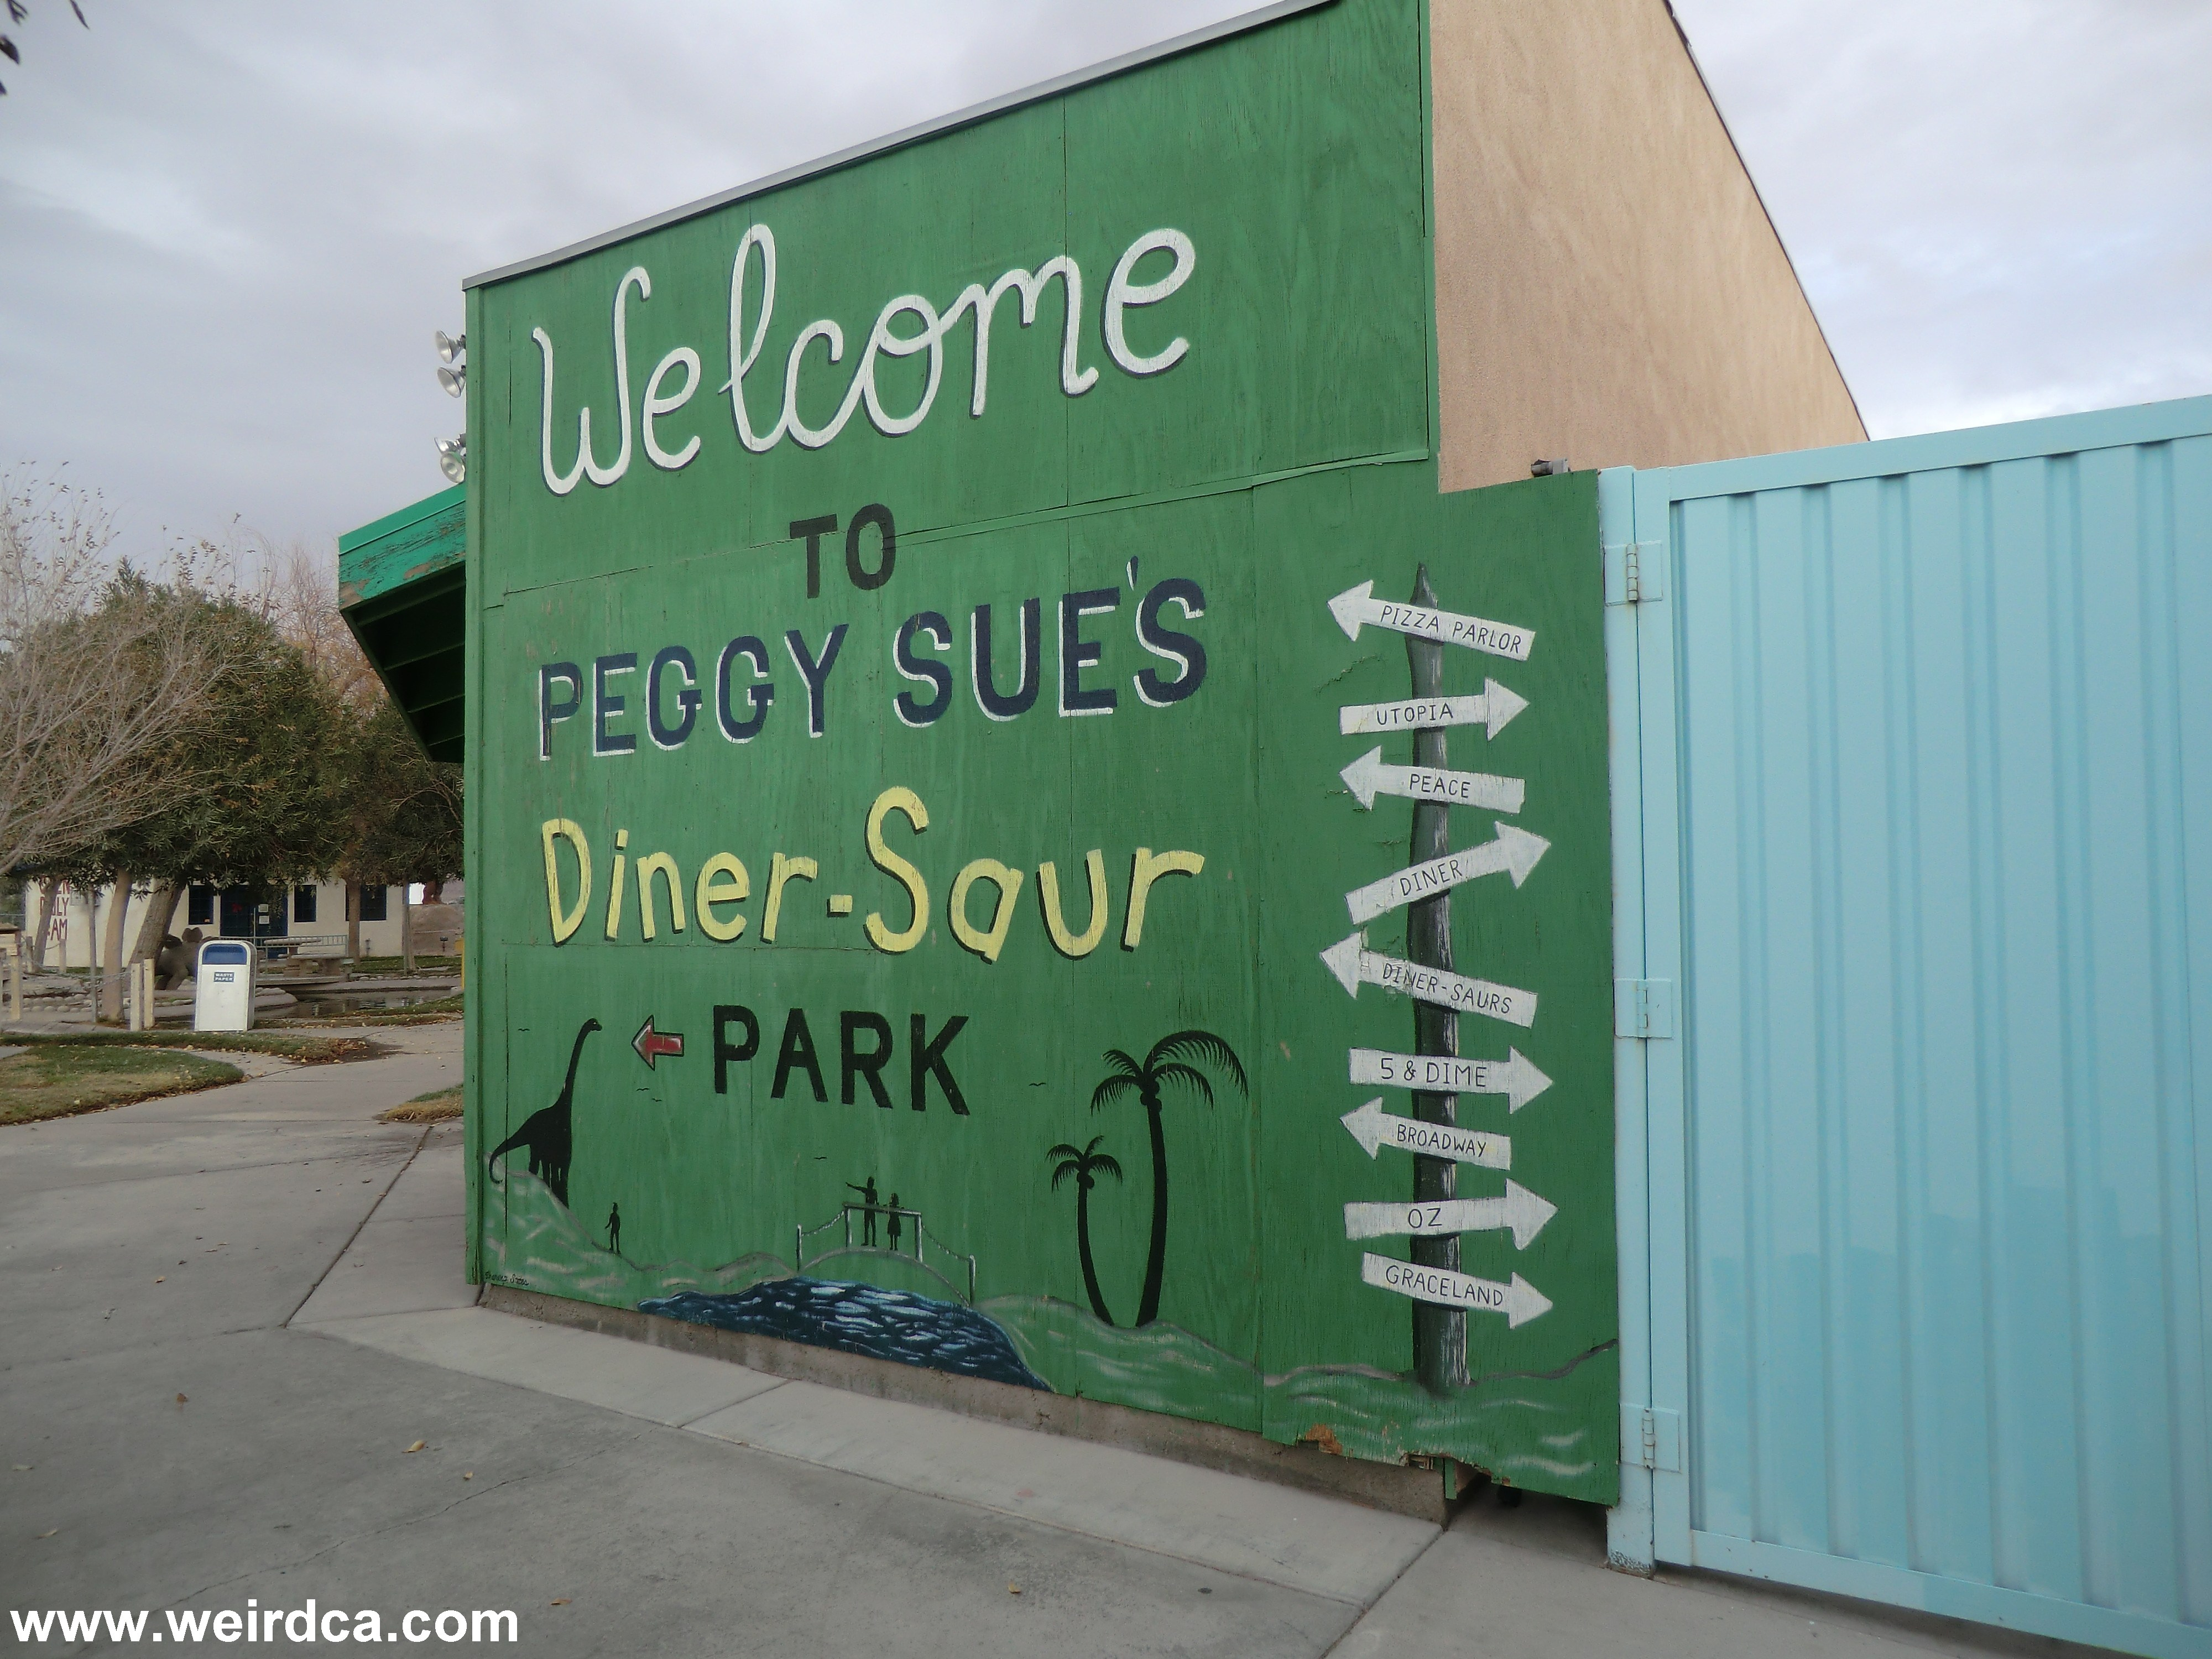 Peggy Sue's 50's Diner - Weird California